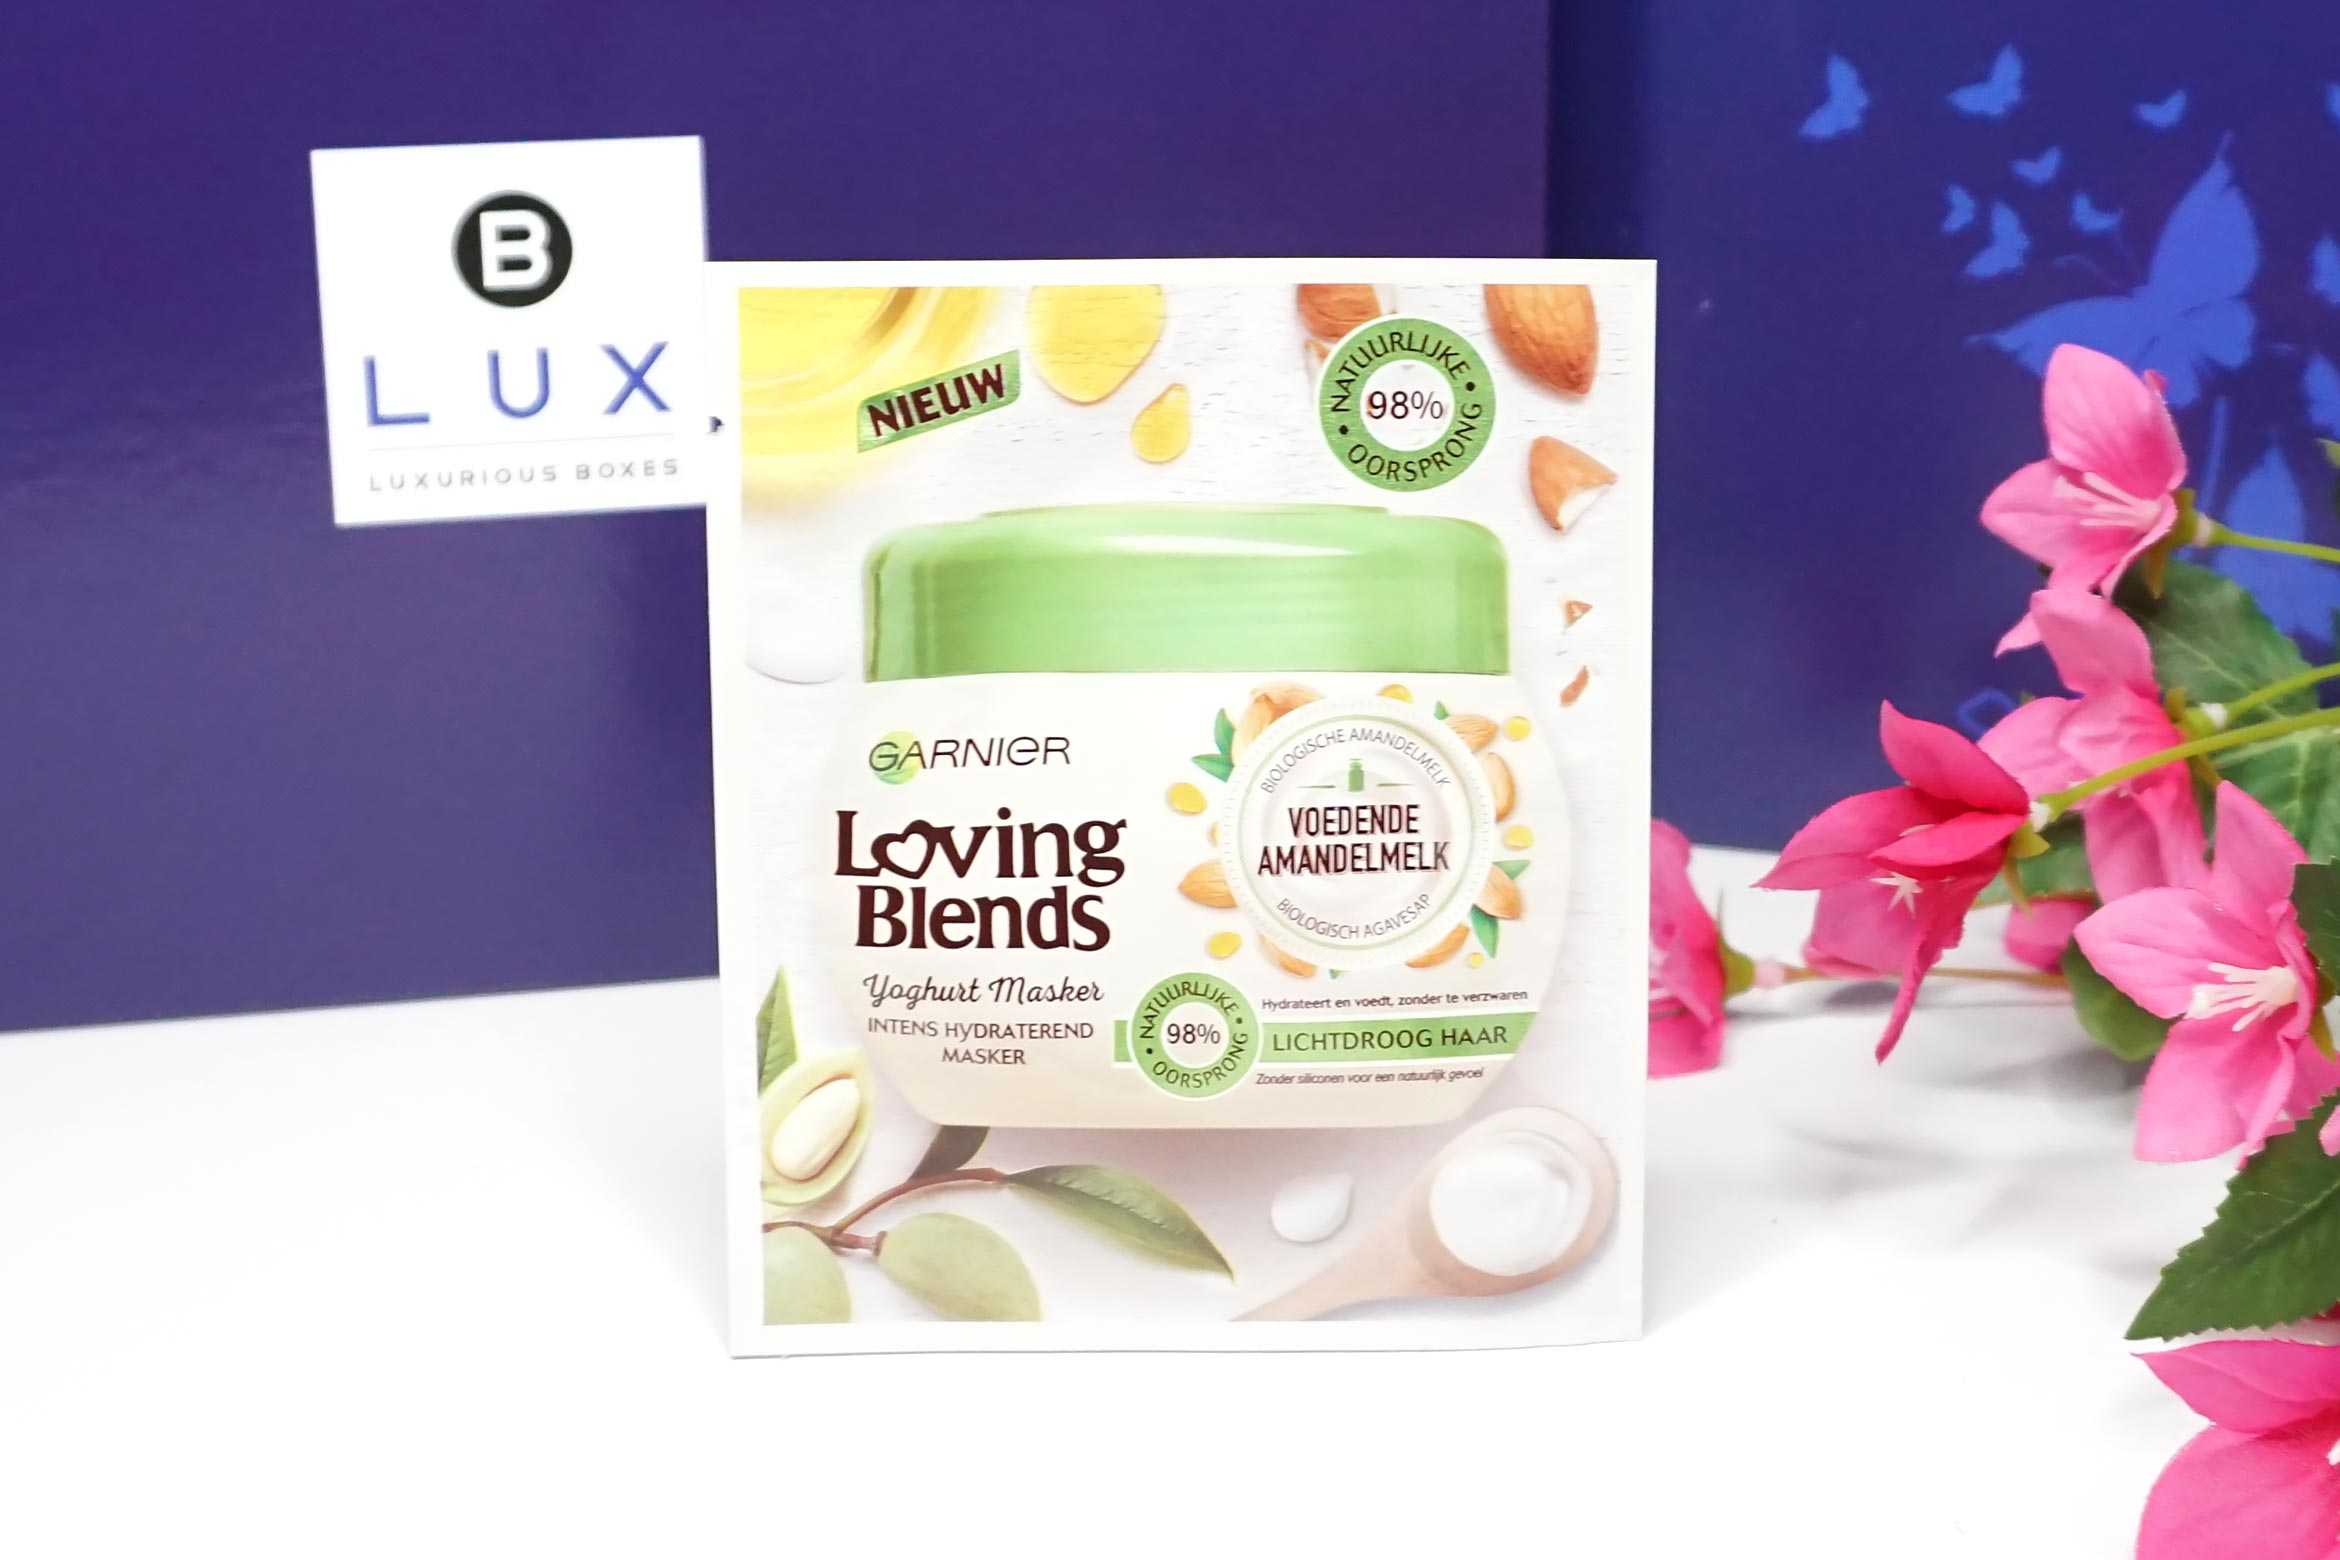 garnier-loving-blends-masker-review